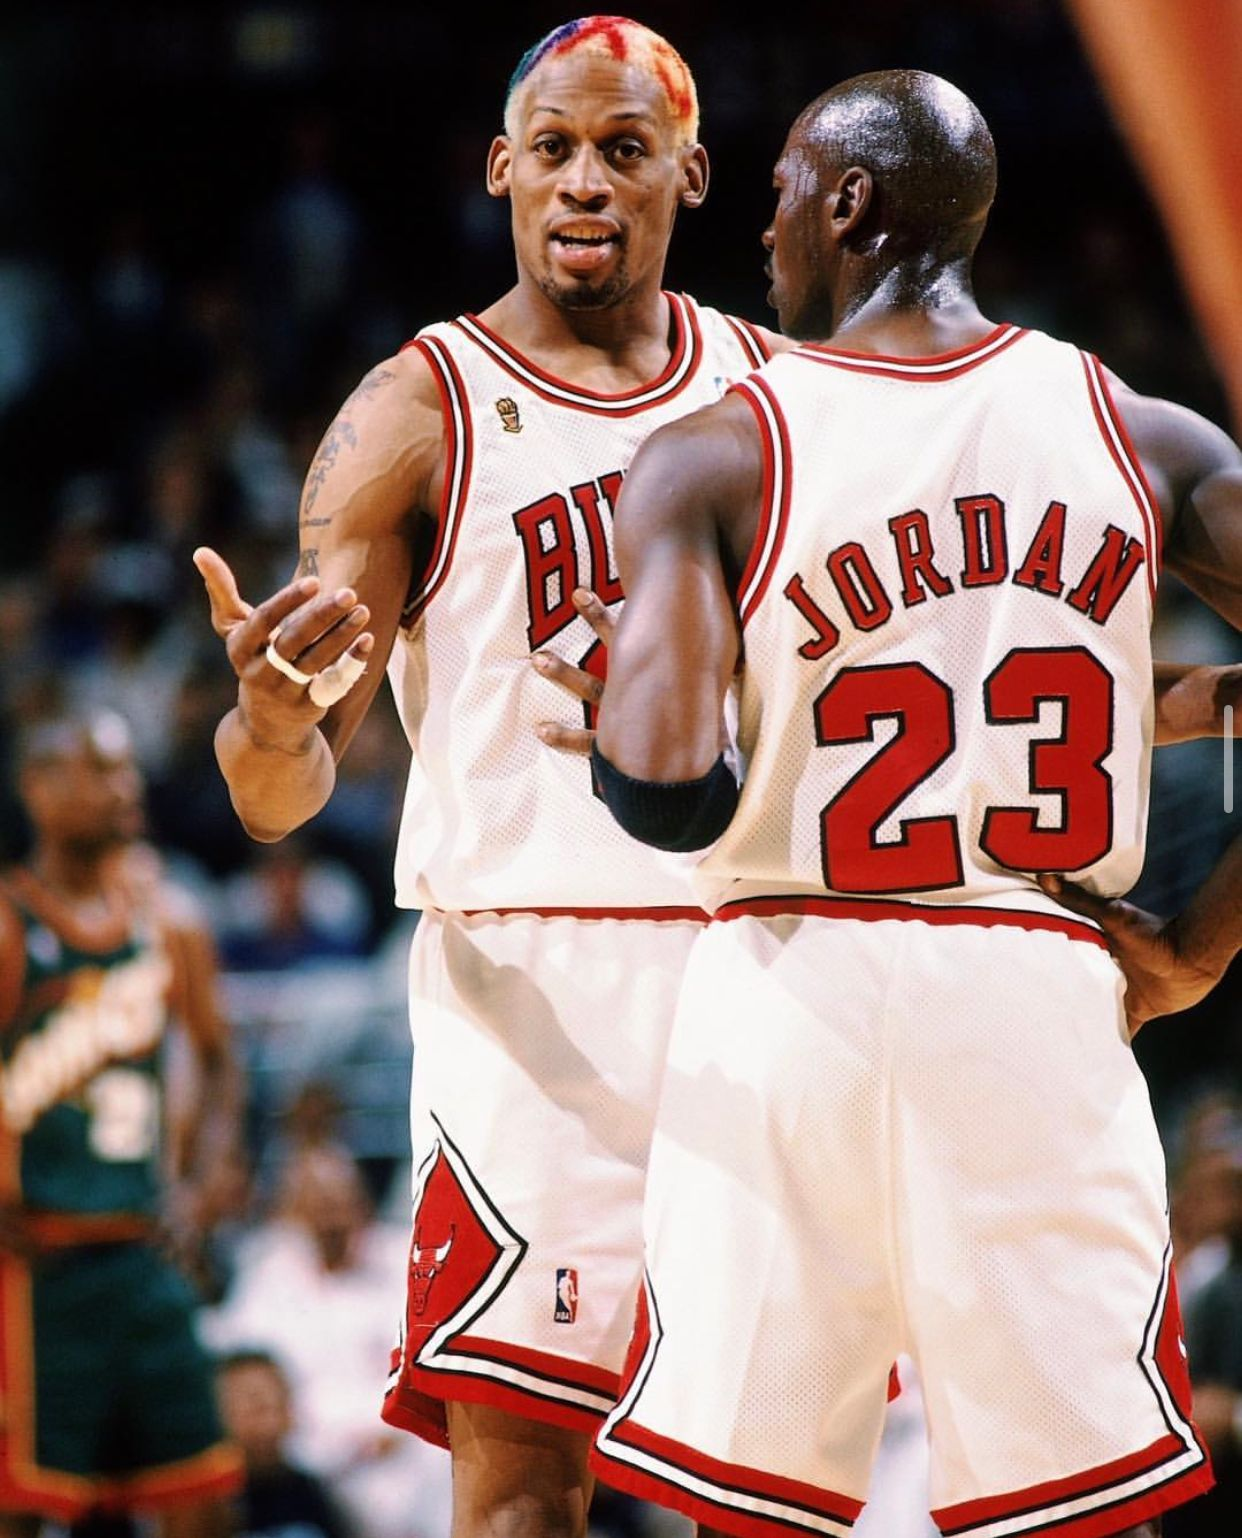 Michael Jordan and Dennis Rodman playing basketball for the Chicago Bulls